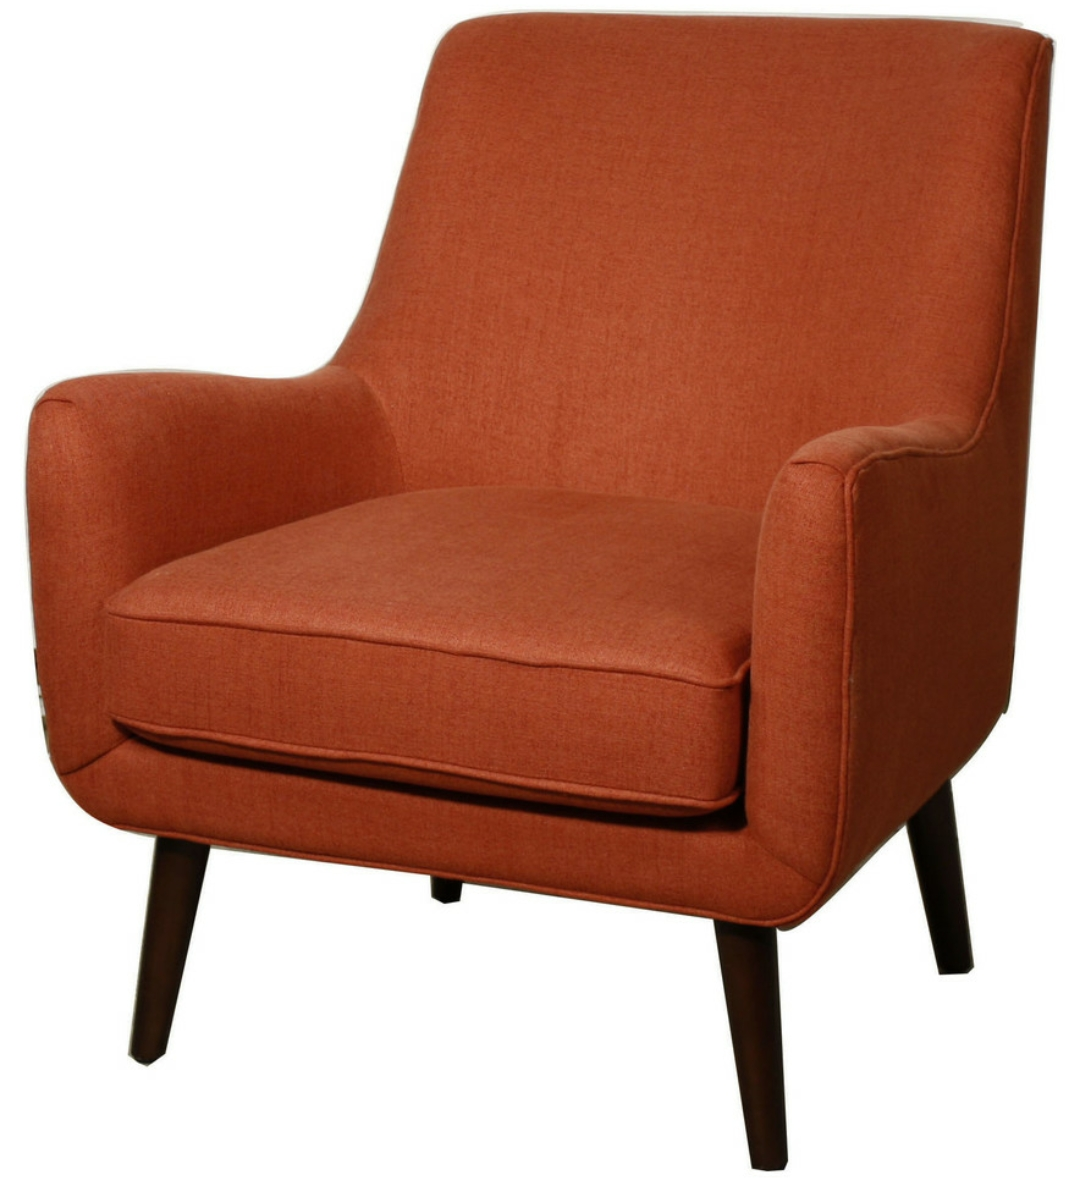 Sofas Center : Astounding Single Seatera Picture Concept in Single Sofa Chairs (Image 22 of 30)